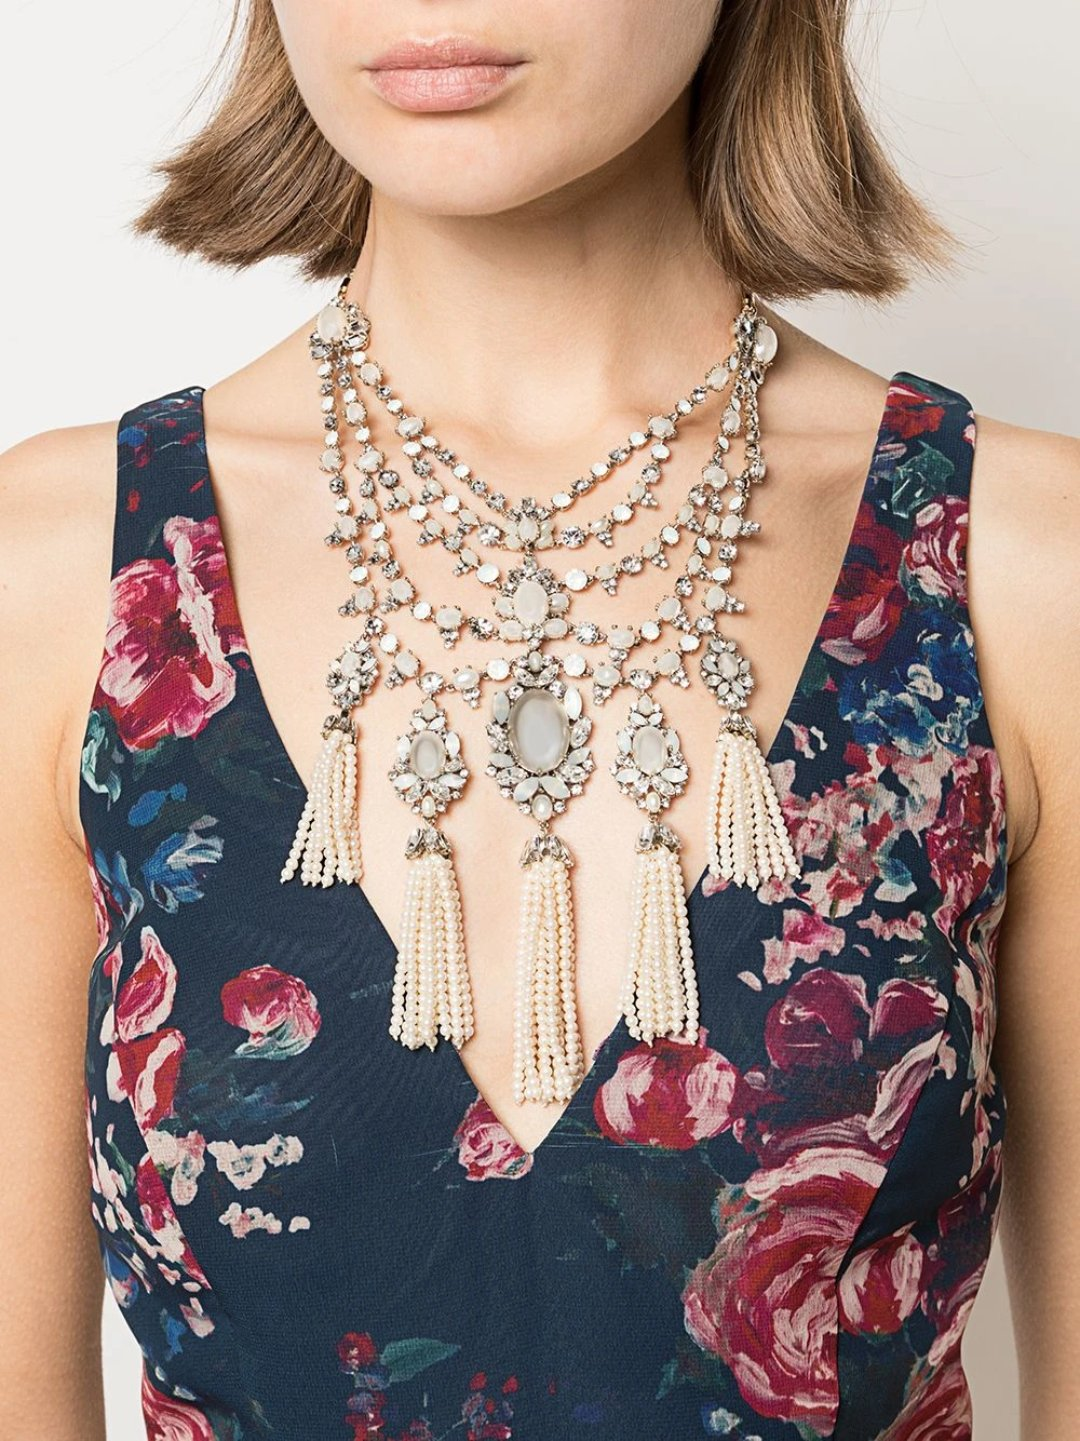 Bohemian Dream Collar Necklace